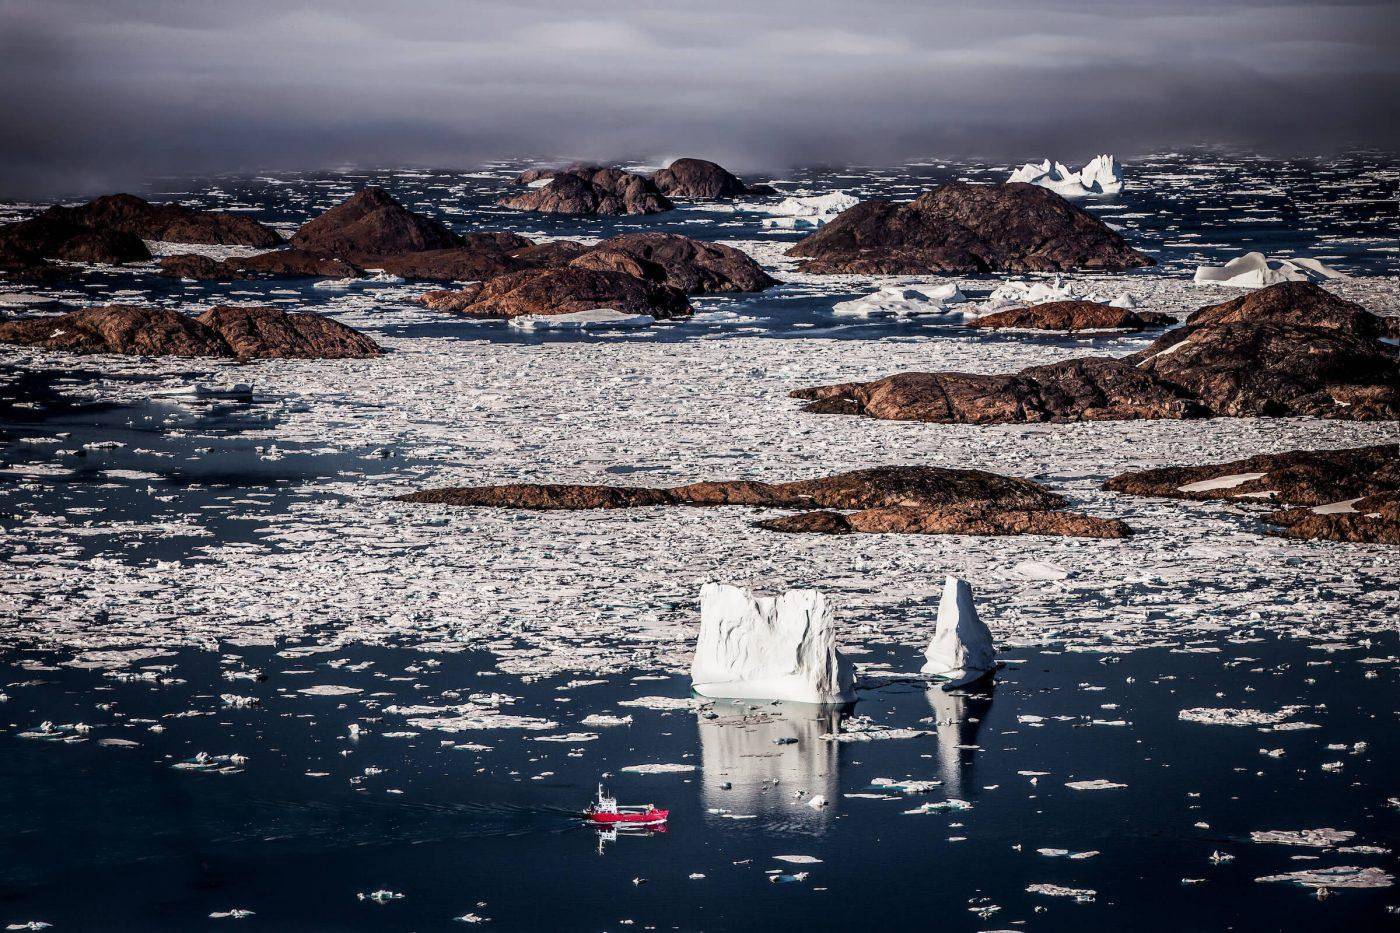 A Royal Arctic Line supply ship in the archipelago near Kulusuk in East Greenland. By Mads Pihl